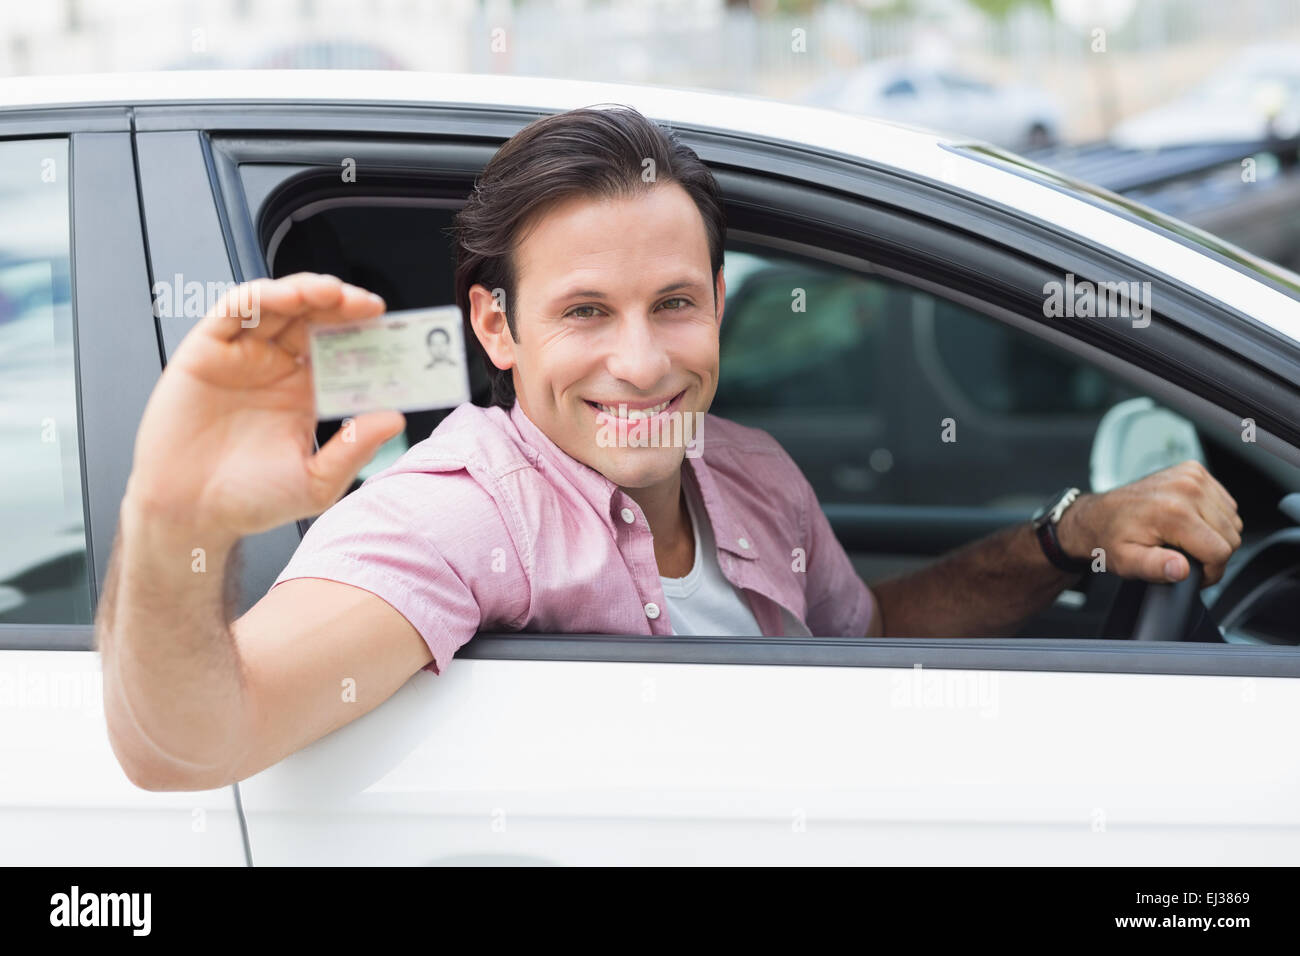 Man smiling and holding his driving license Stock Photo